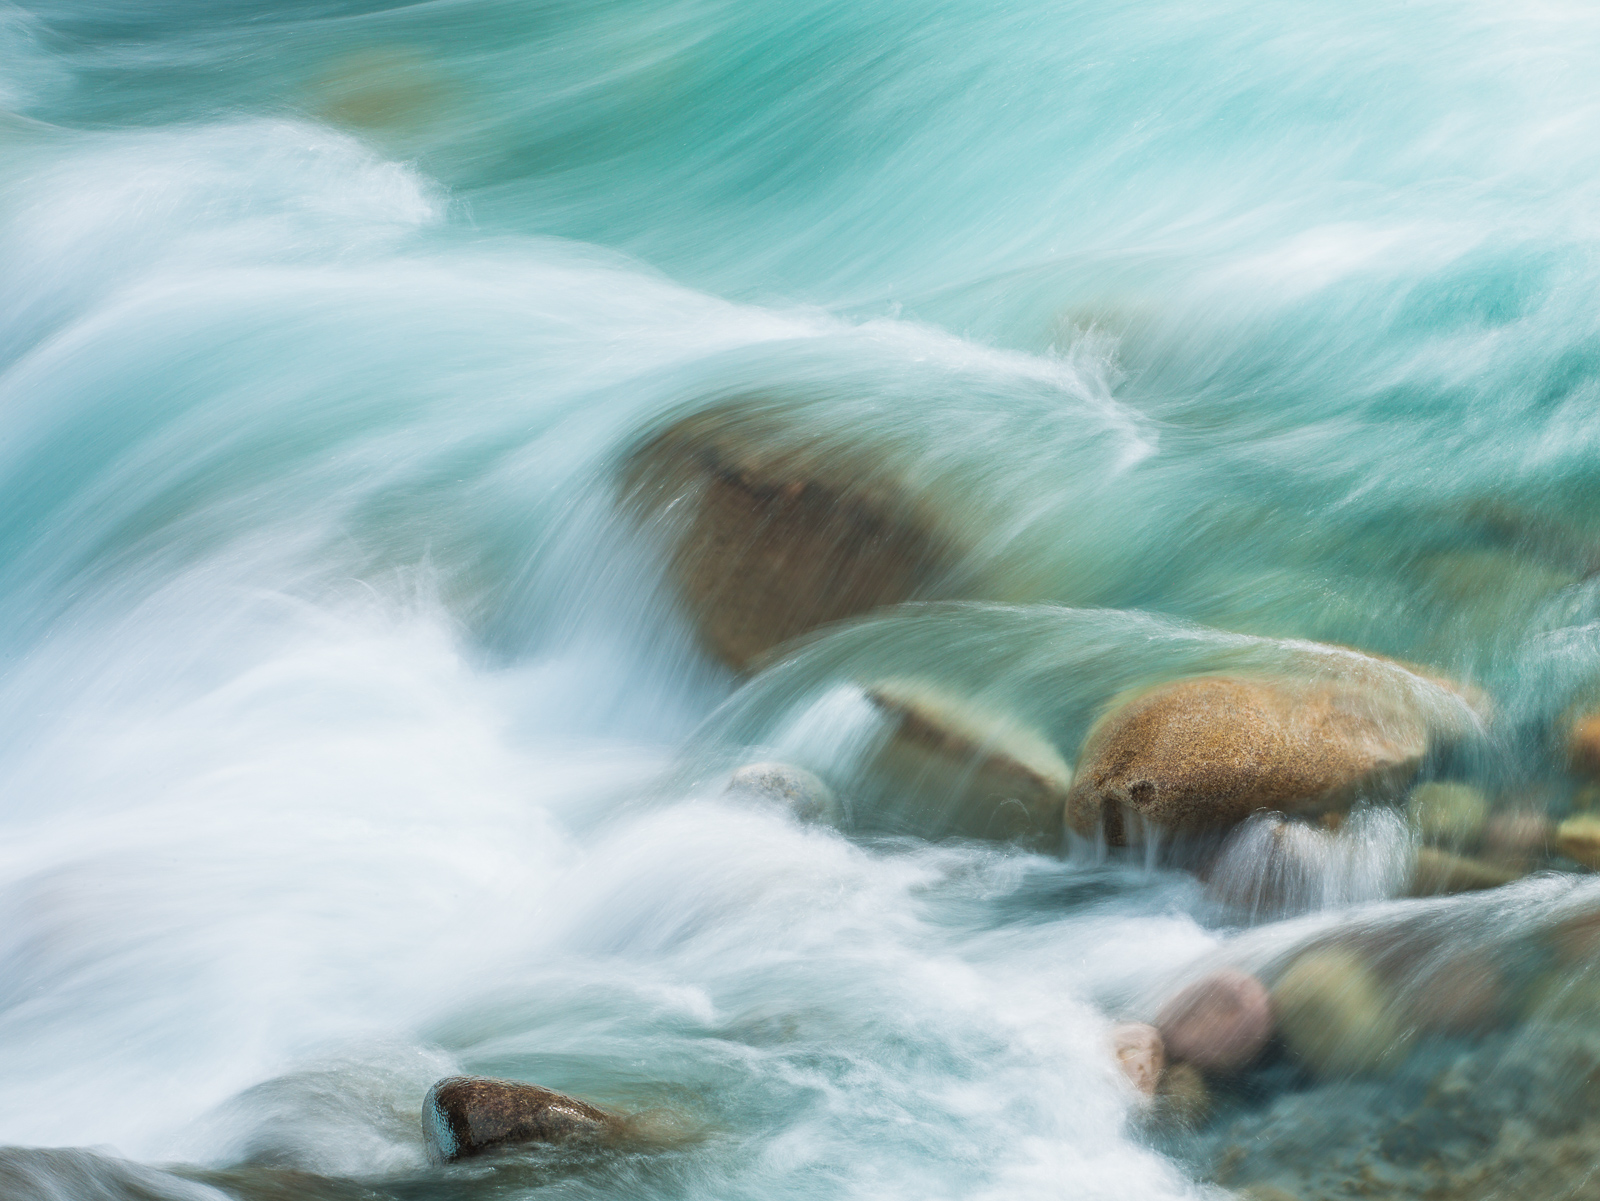 Glacial Waters,Jasper National Park, Canada,Glacial, water,Mountain,rock, photo